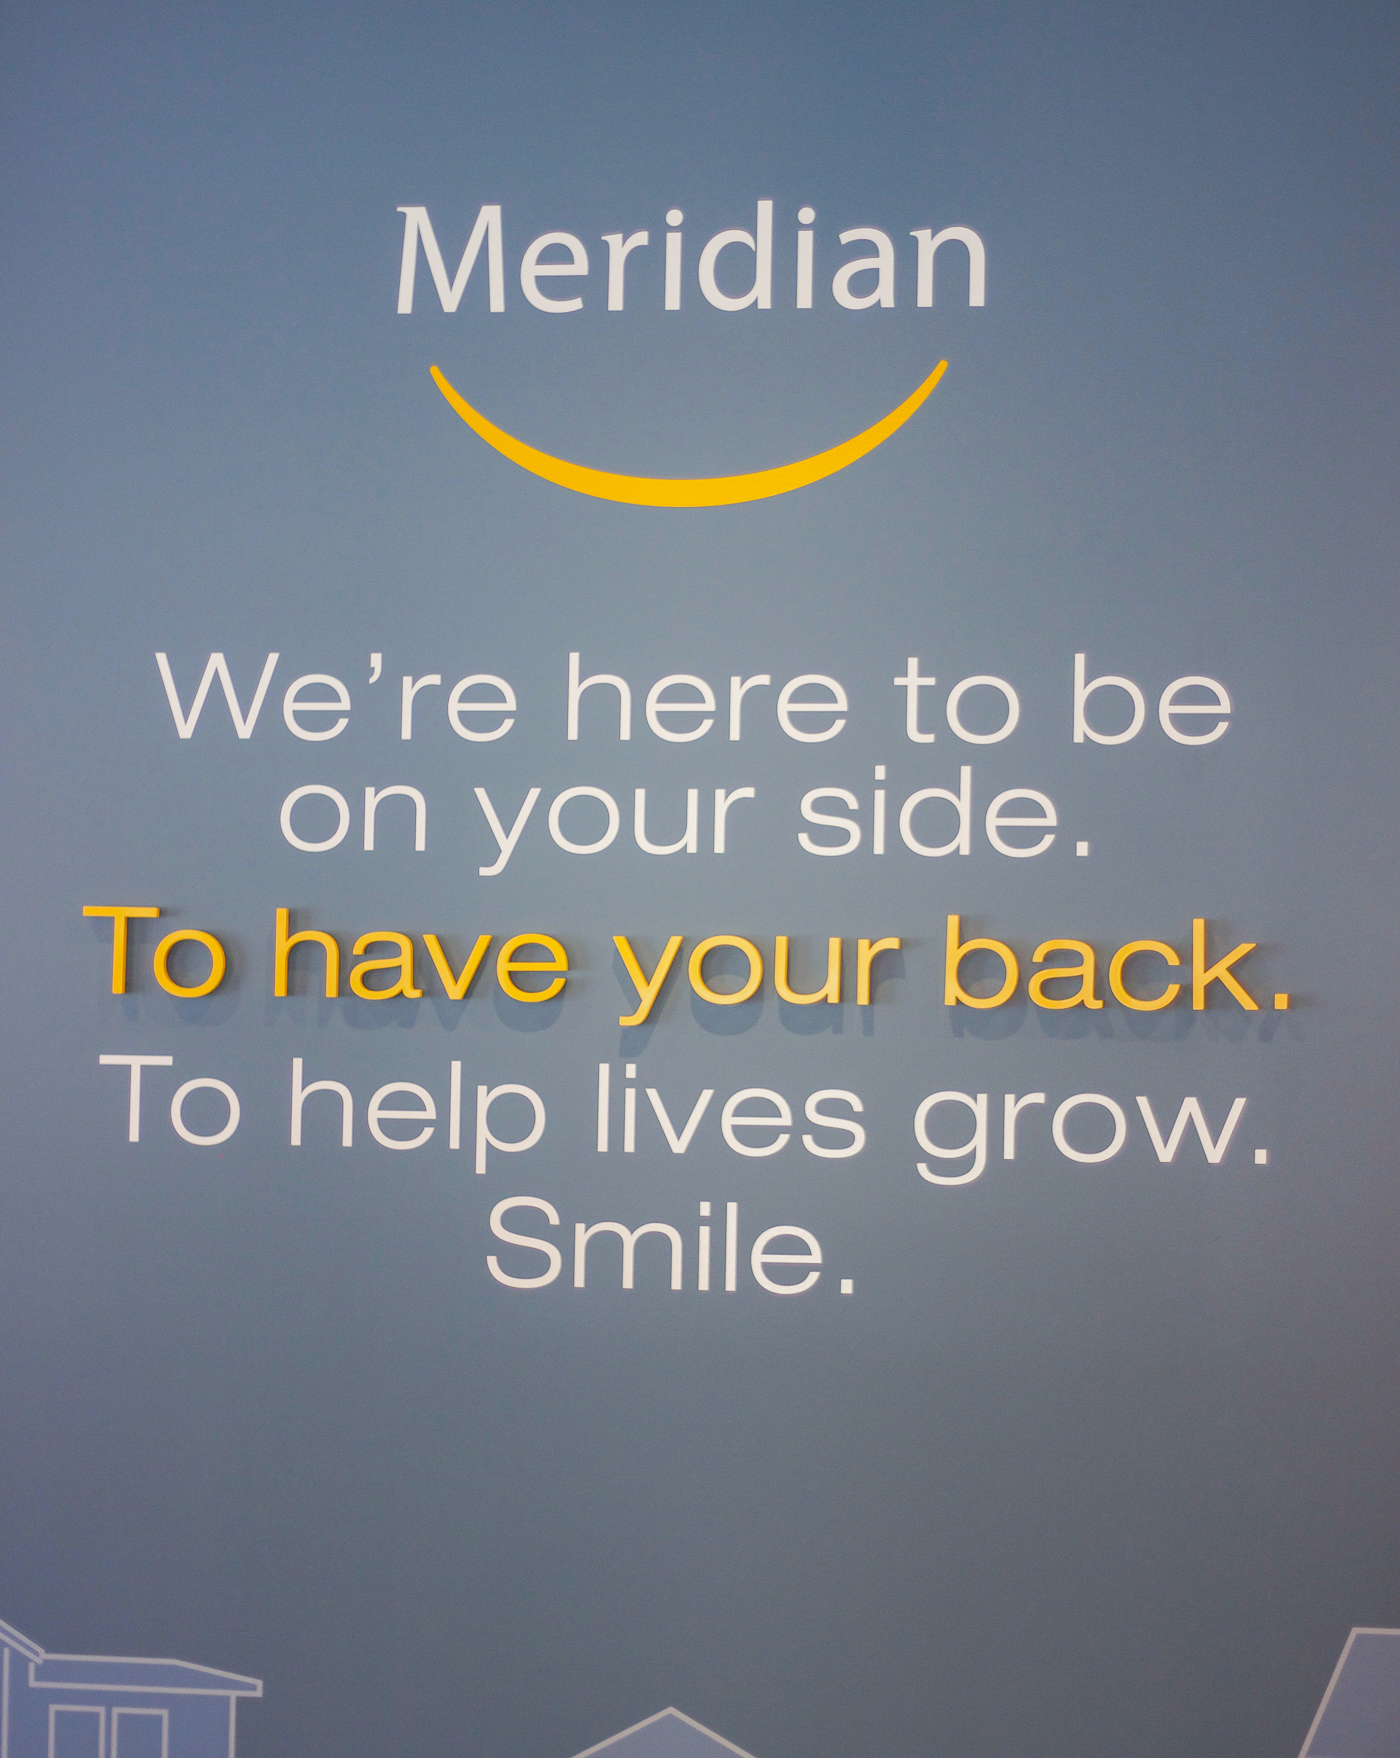 Meridian Credit Union and why they're different than traditional banks